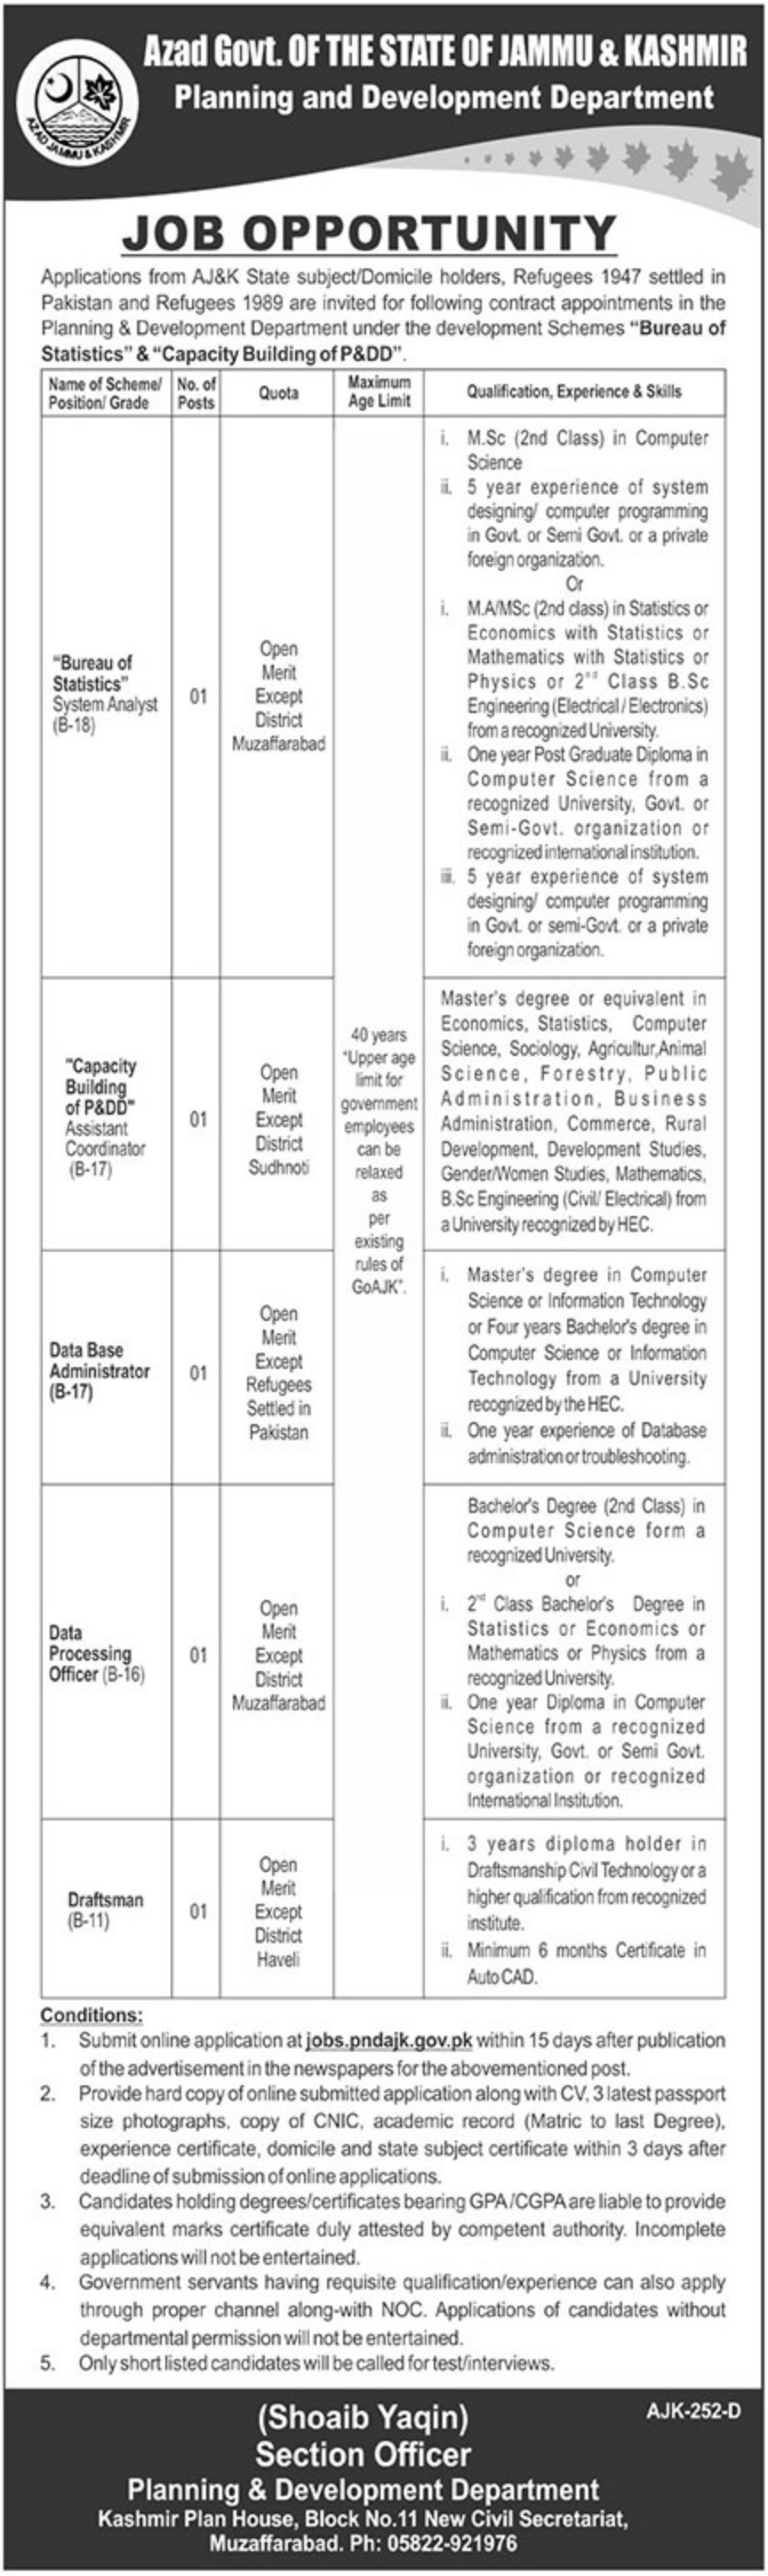 Planning & Development Department AJK Jobs 2019 Latest P&DD Muzaffarabad